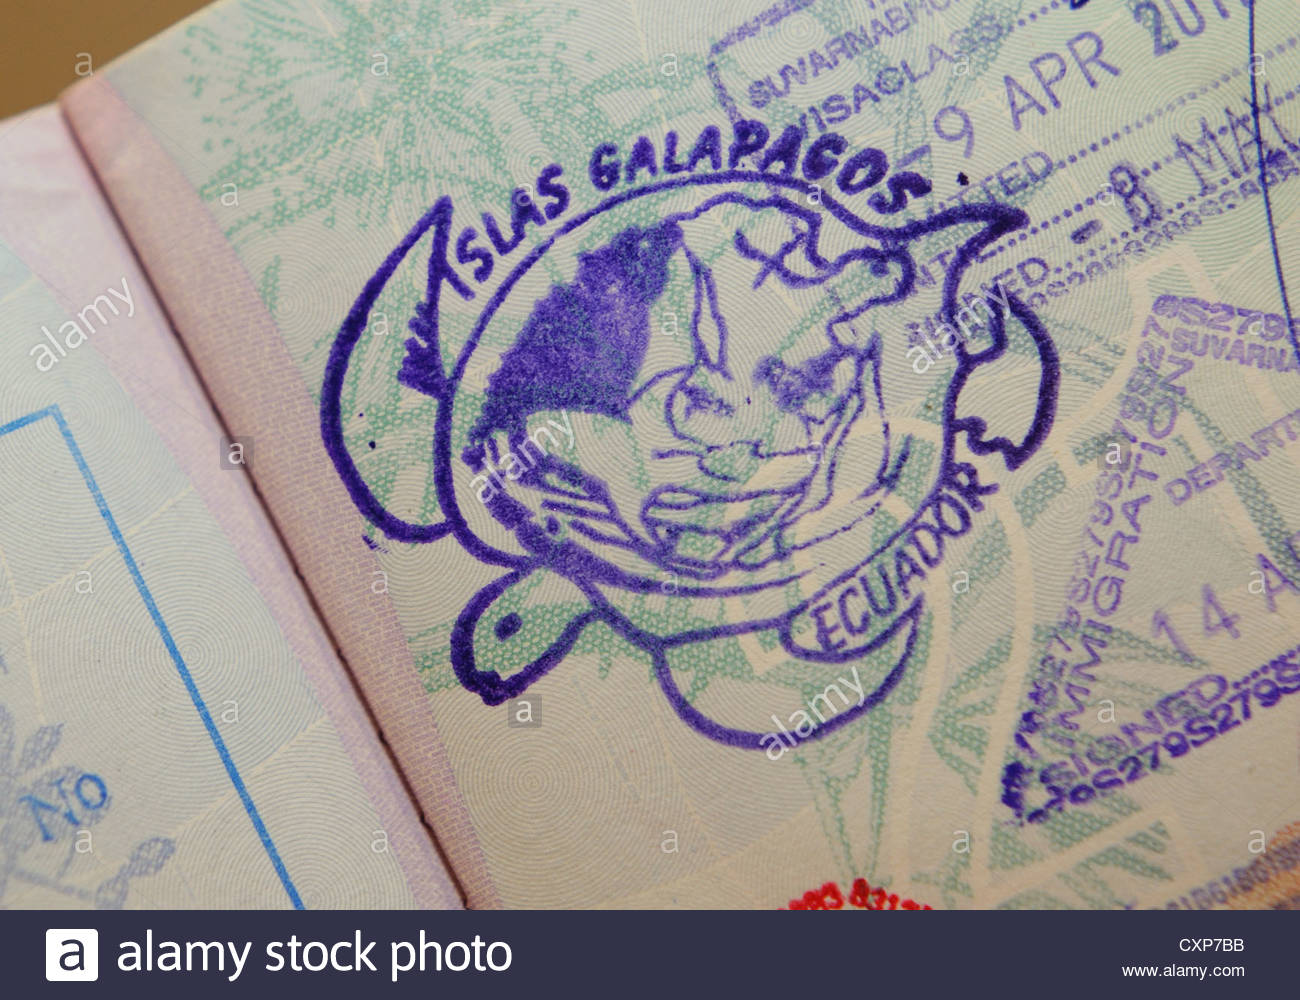 Galapagos Islands stamp in an Australian passport - Stock Image